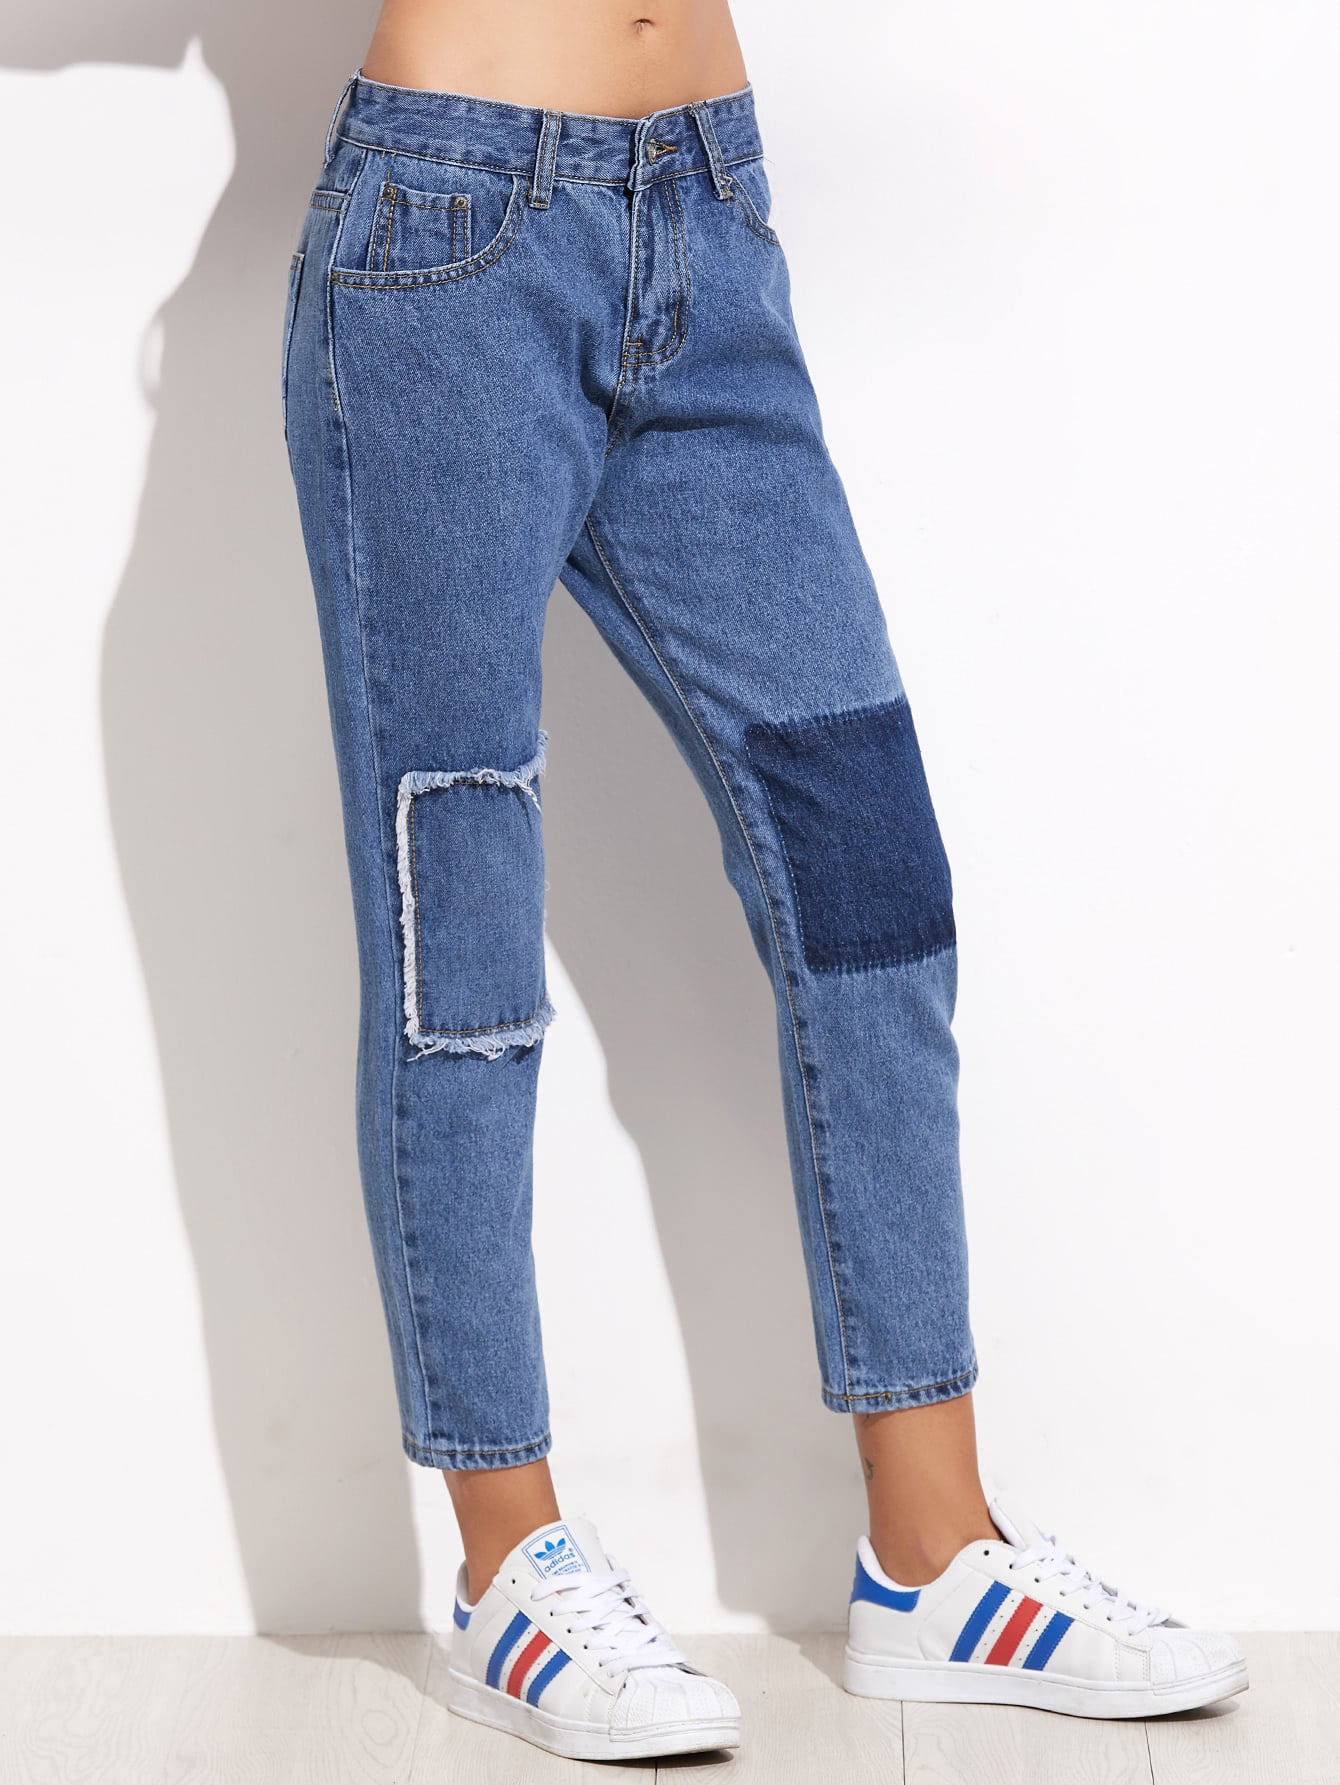 Blue Patchwork Ankle Jeans ferzige woman jeans boot cut embroidered high stretch womens flared pants ladies flowers embroidery blue jeans mujer femme jeans